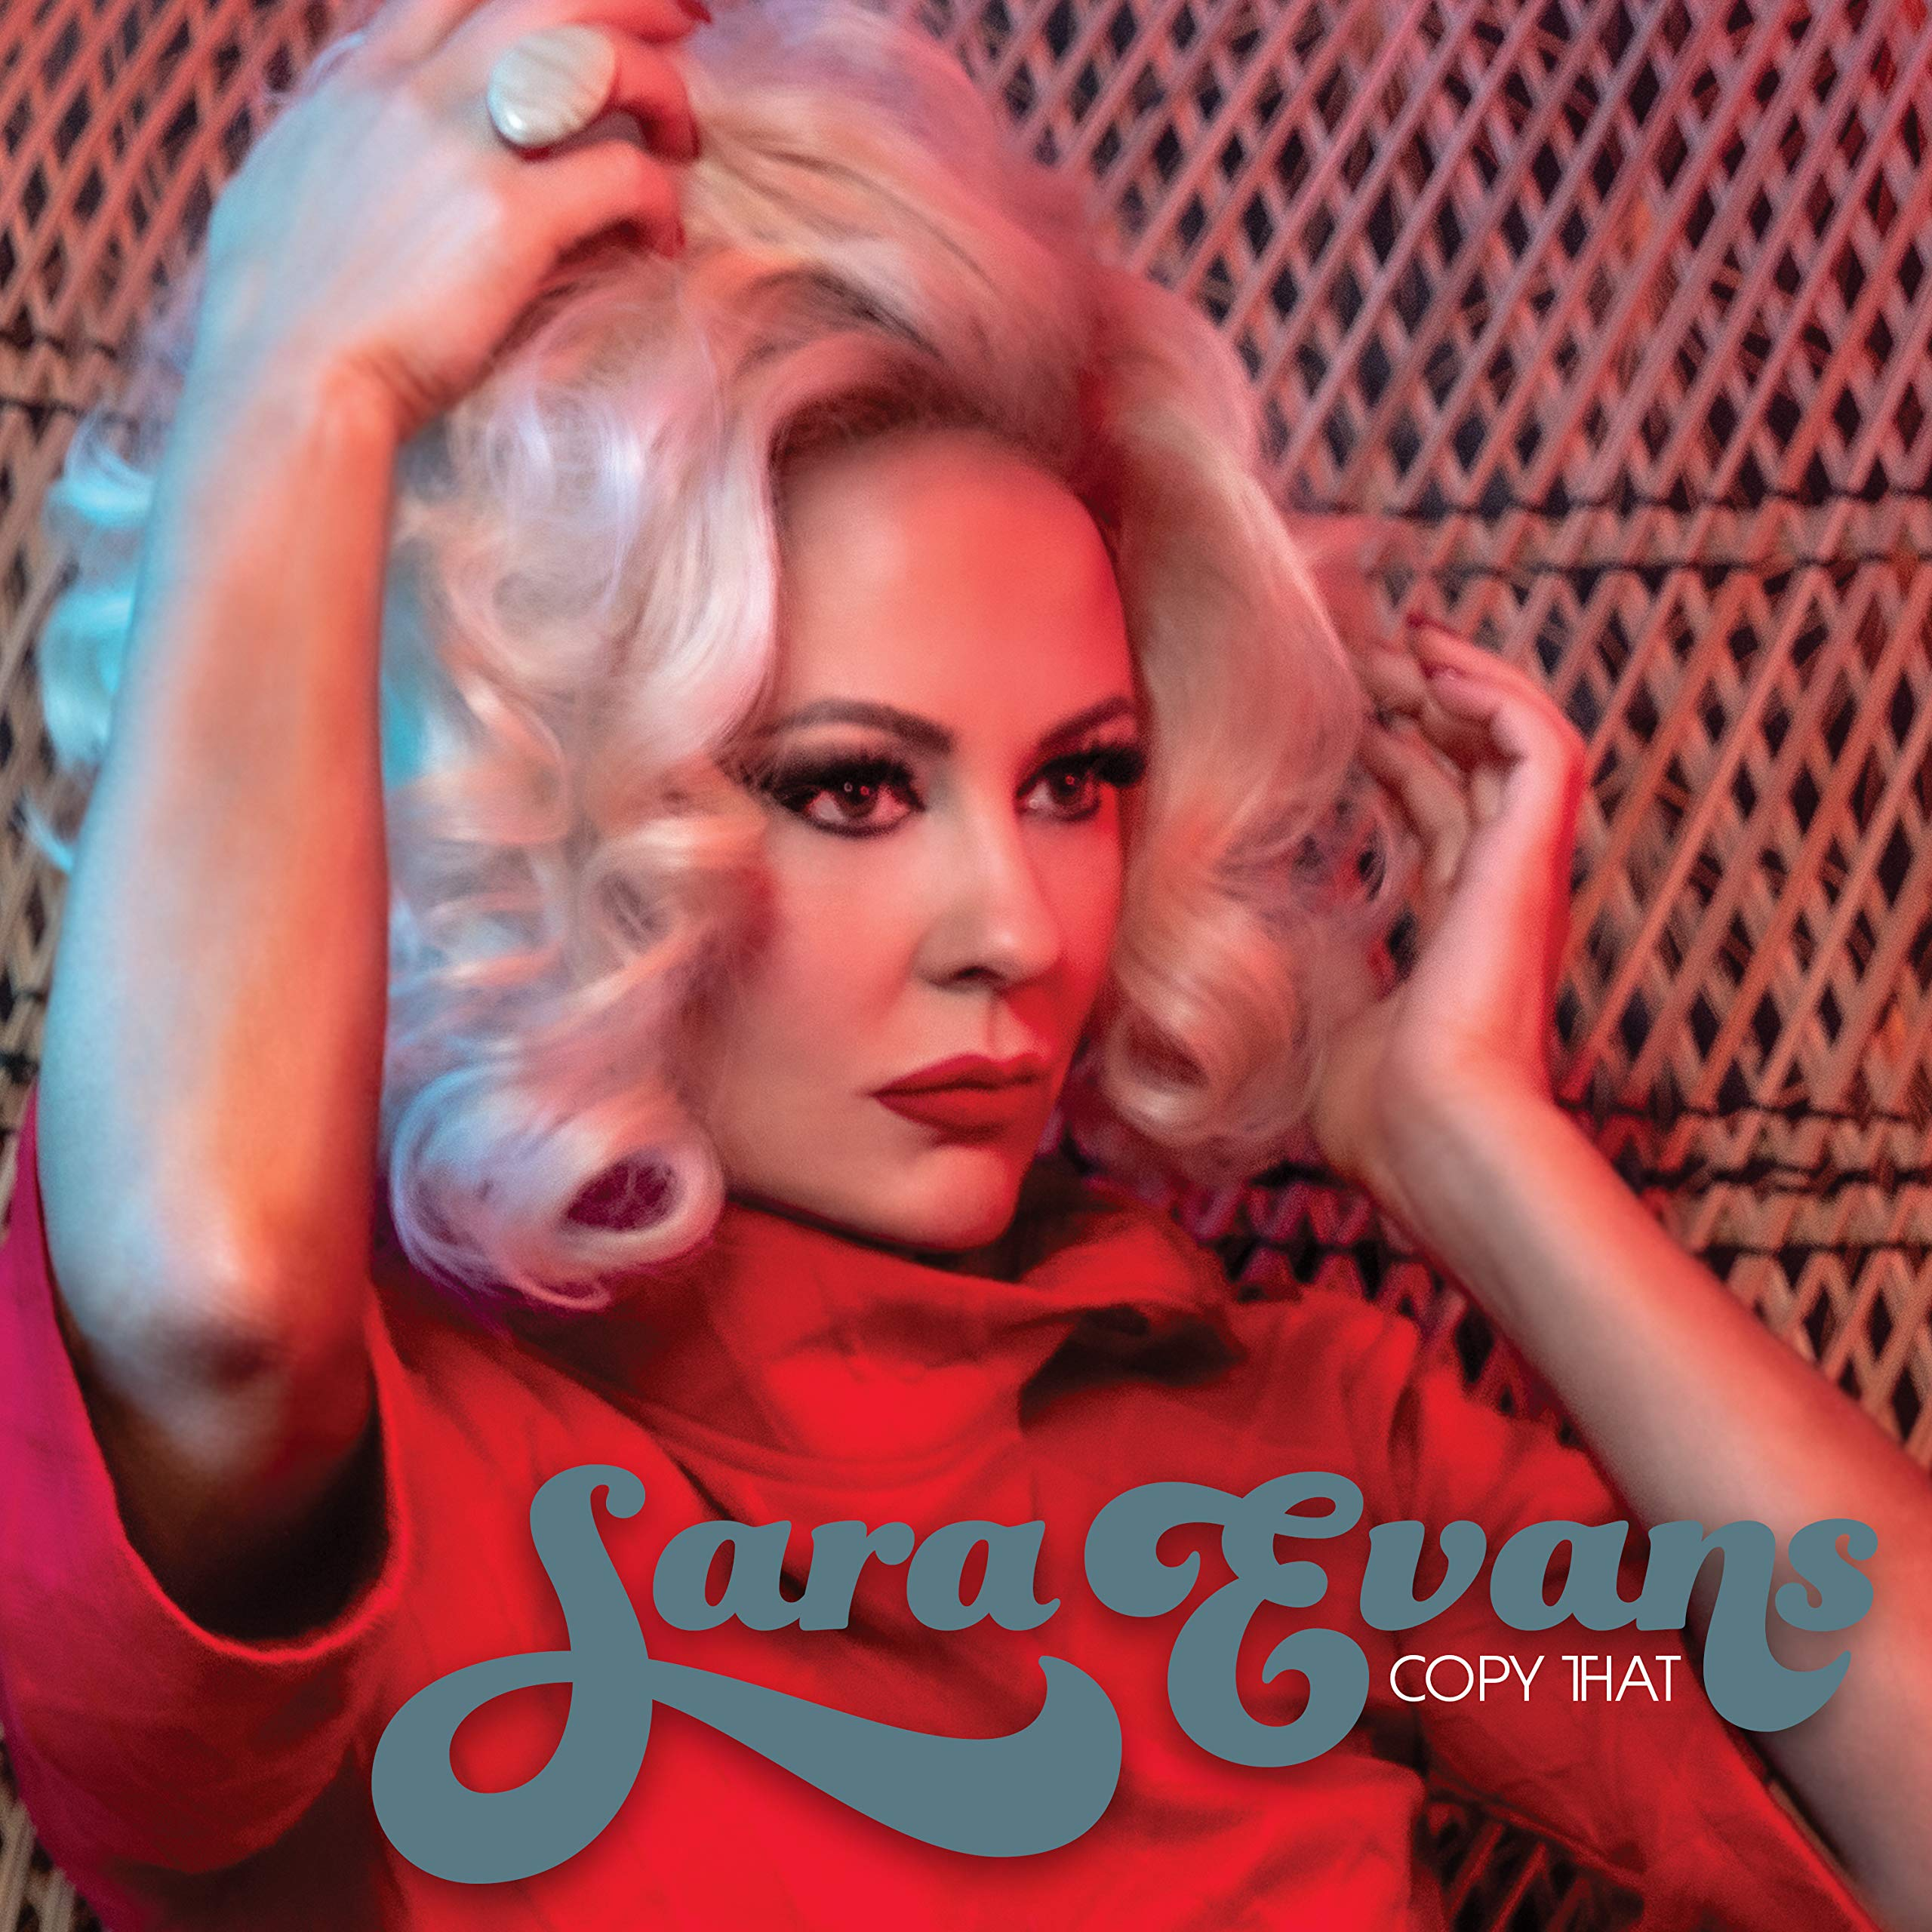 Sara Evans - Copy That (2020) [FLAC] Download